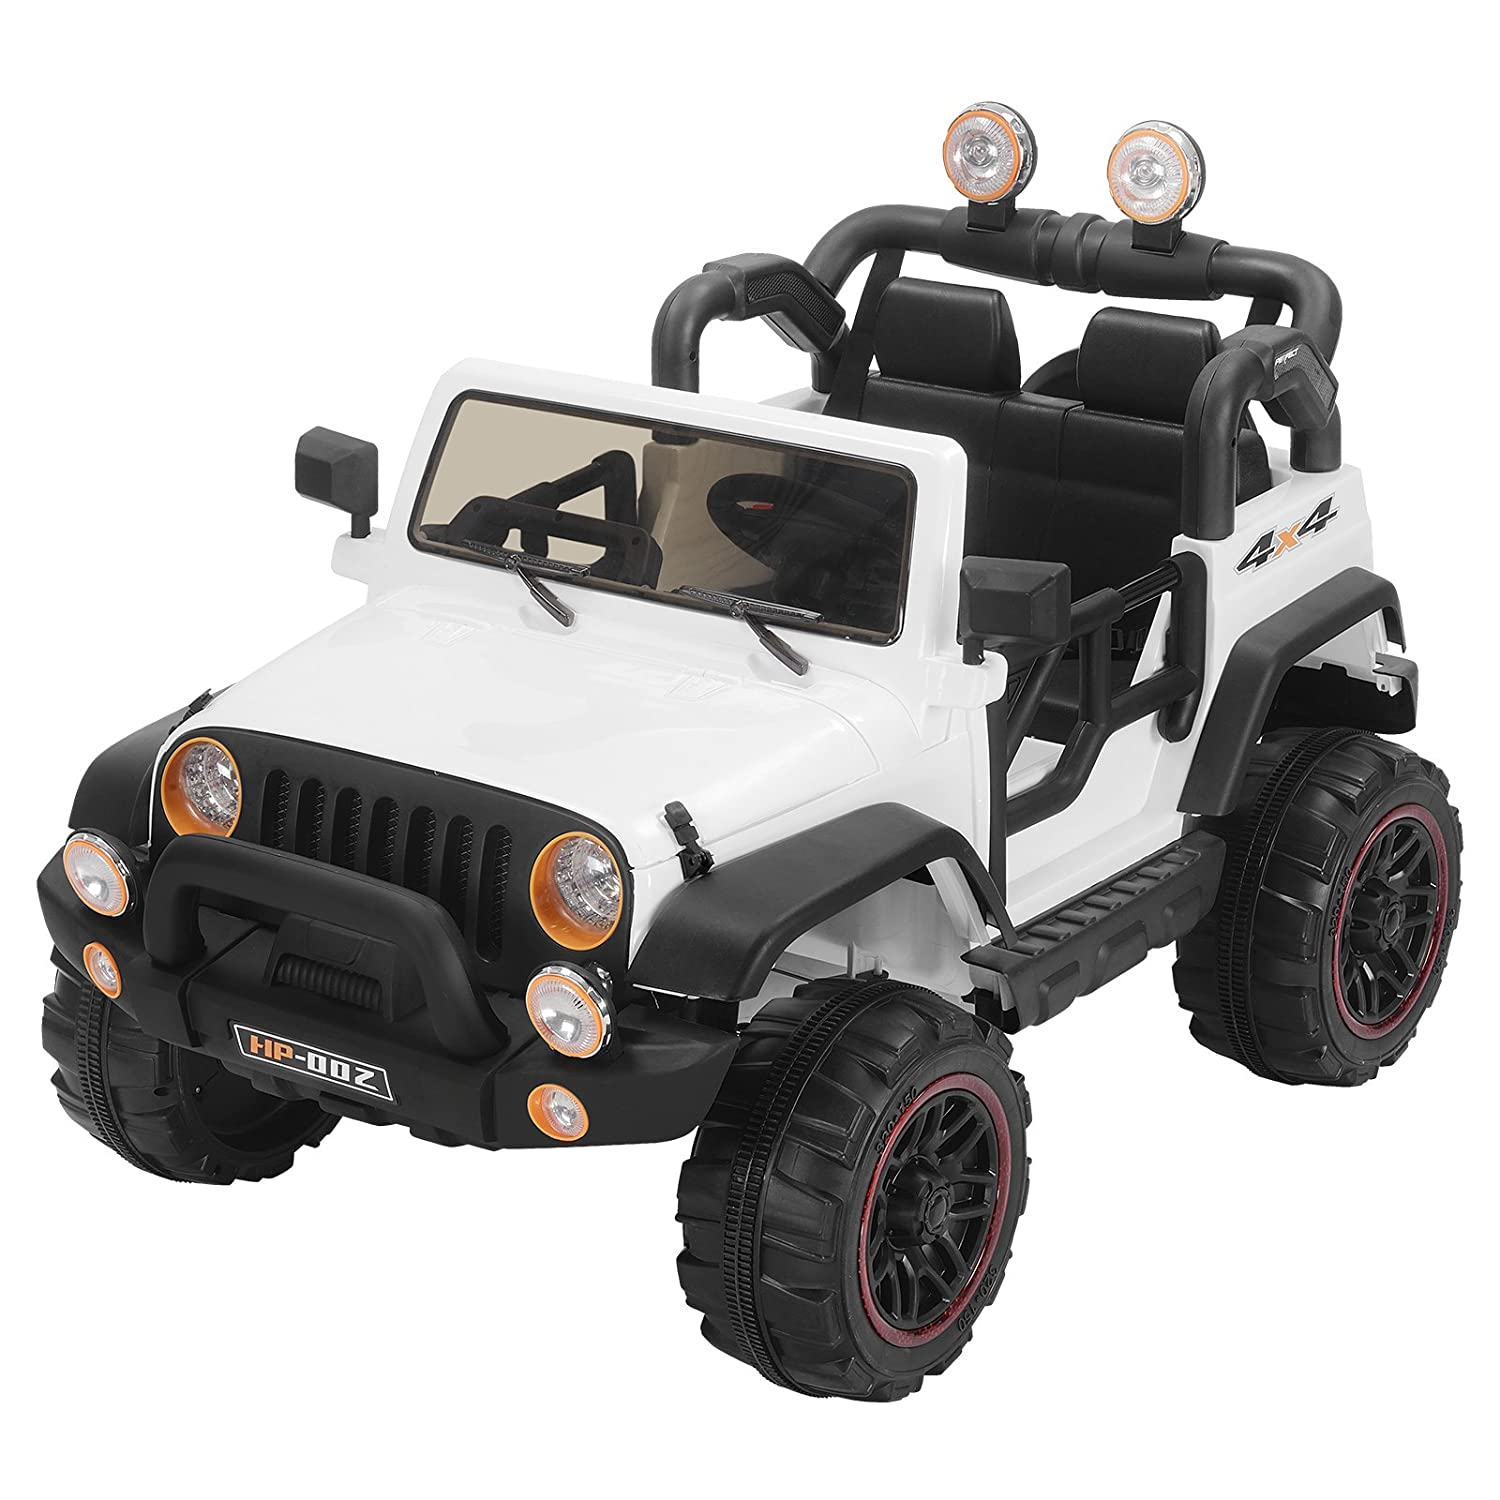 Murtisol Kids Power Wheels 12 V Electric Ride On Cars With Remote Control 2 Speed White by Murtisol